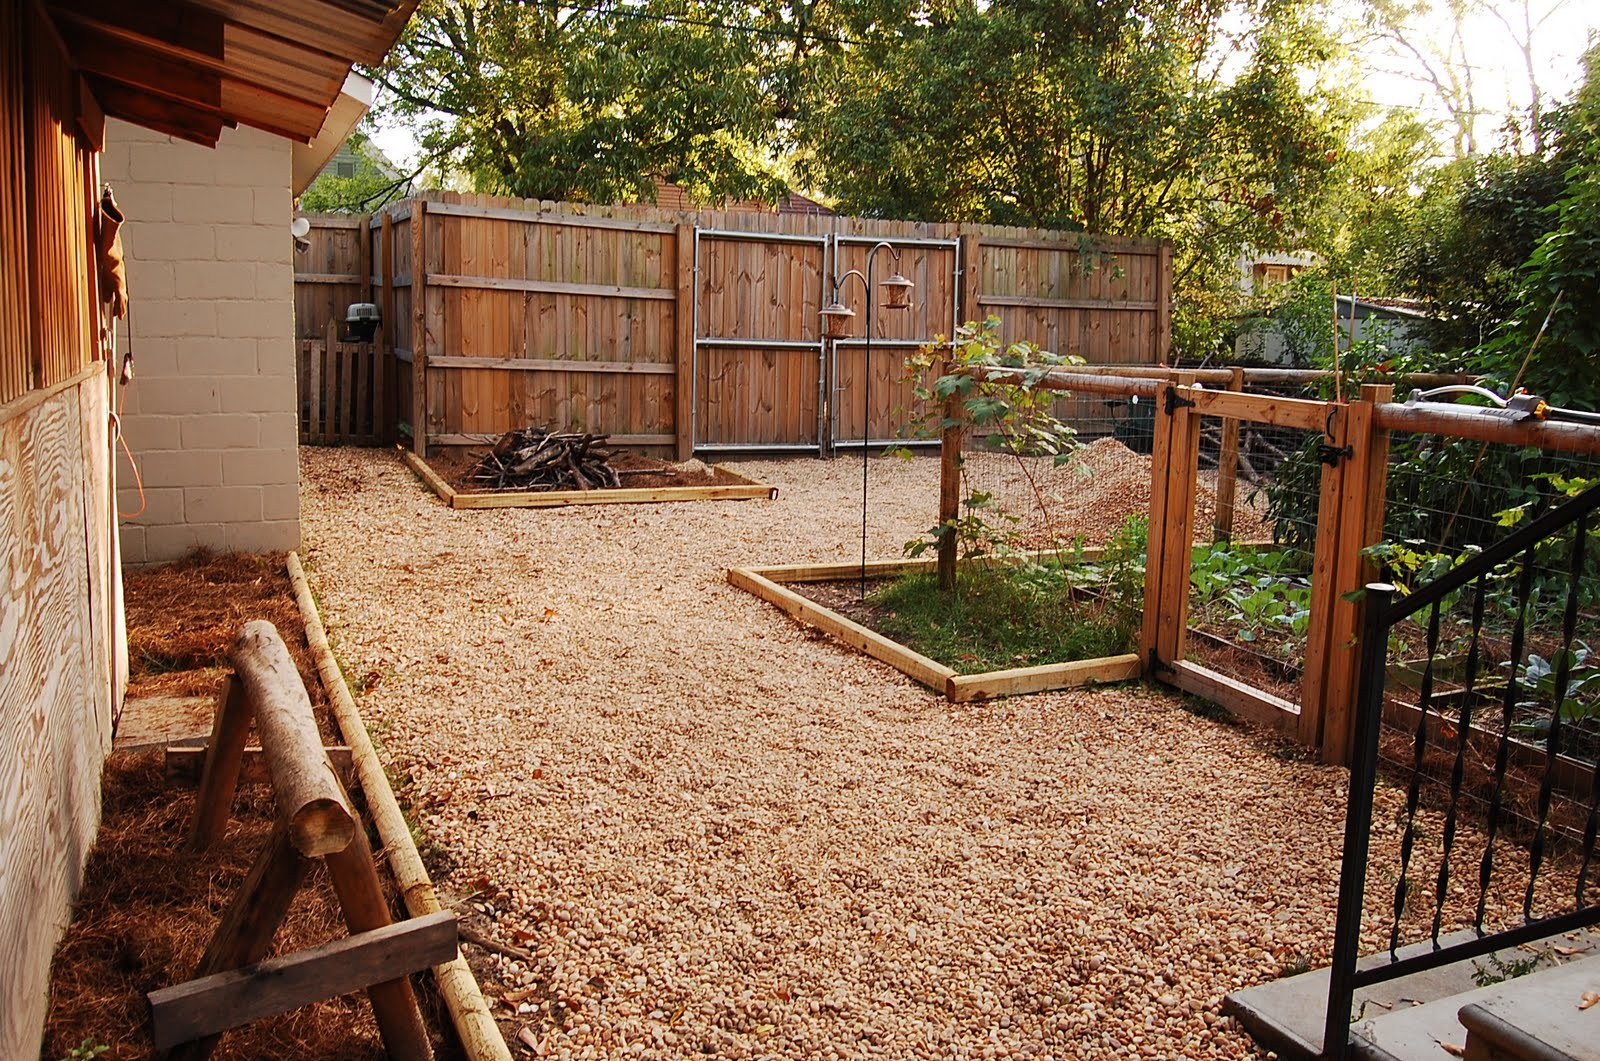 Urban self sufficientist backyard remodel on the cheap for Garden renovation on a budget